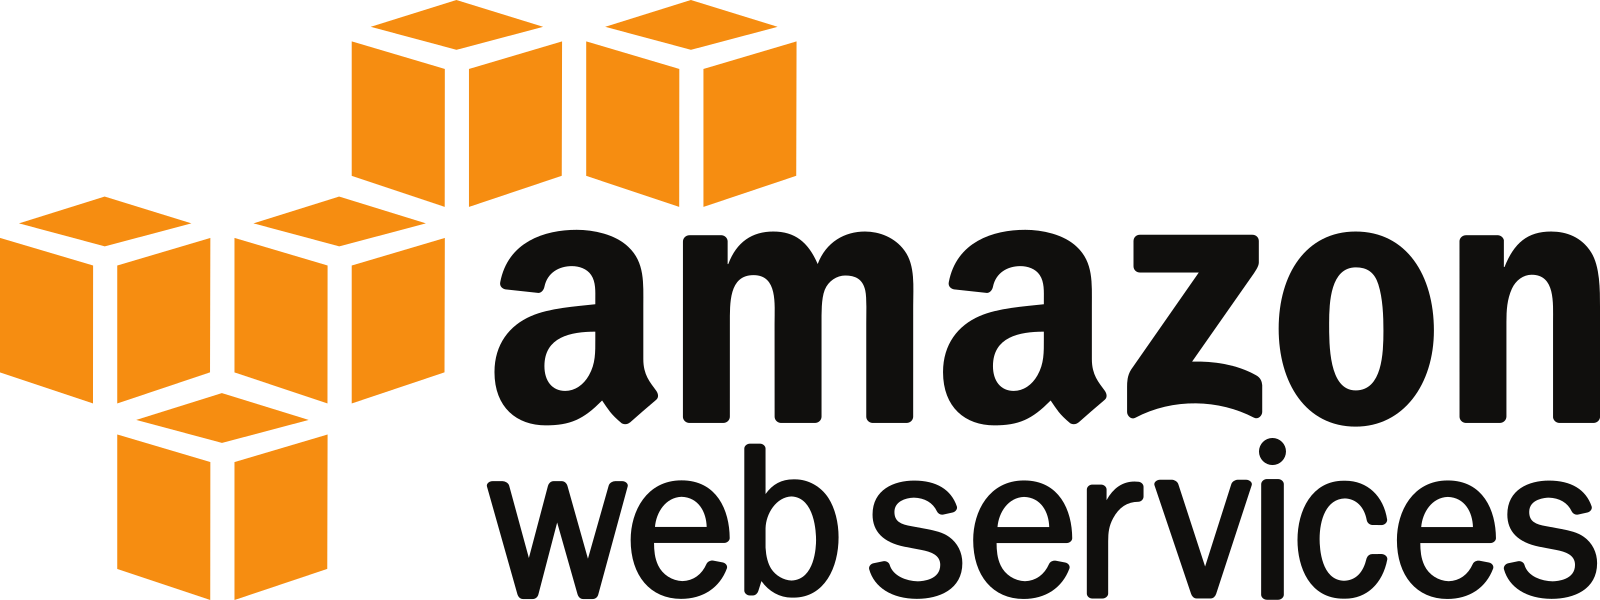 amazon-web-services-logo-5